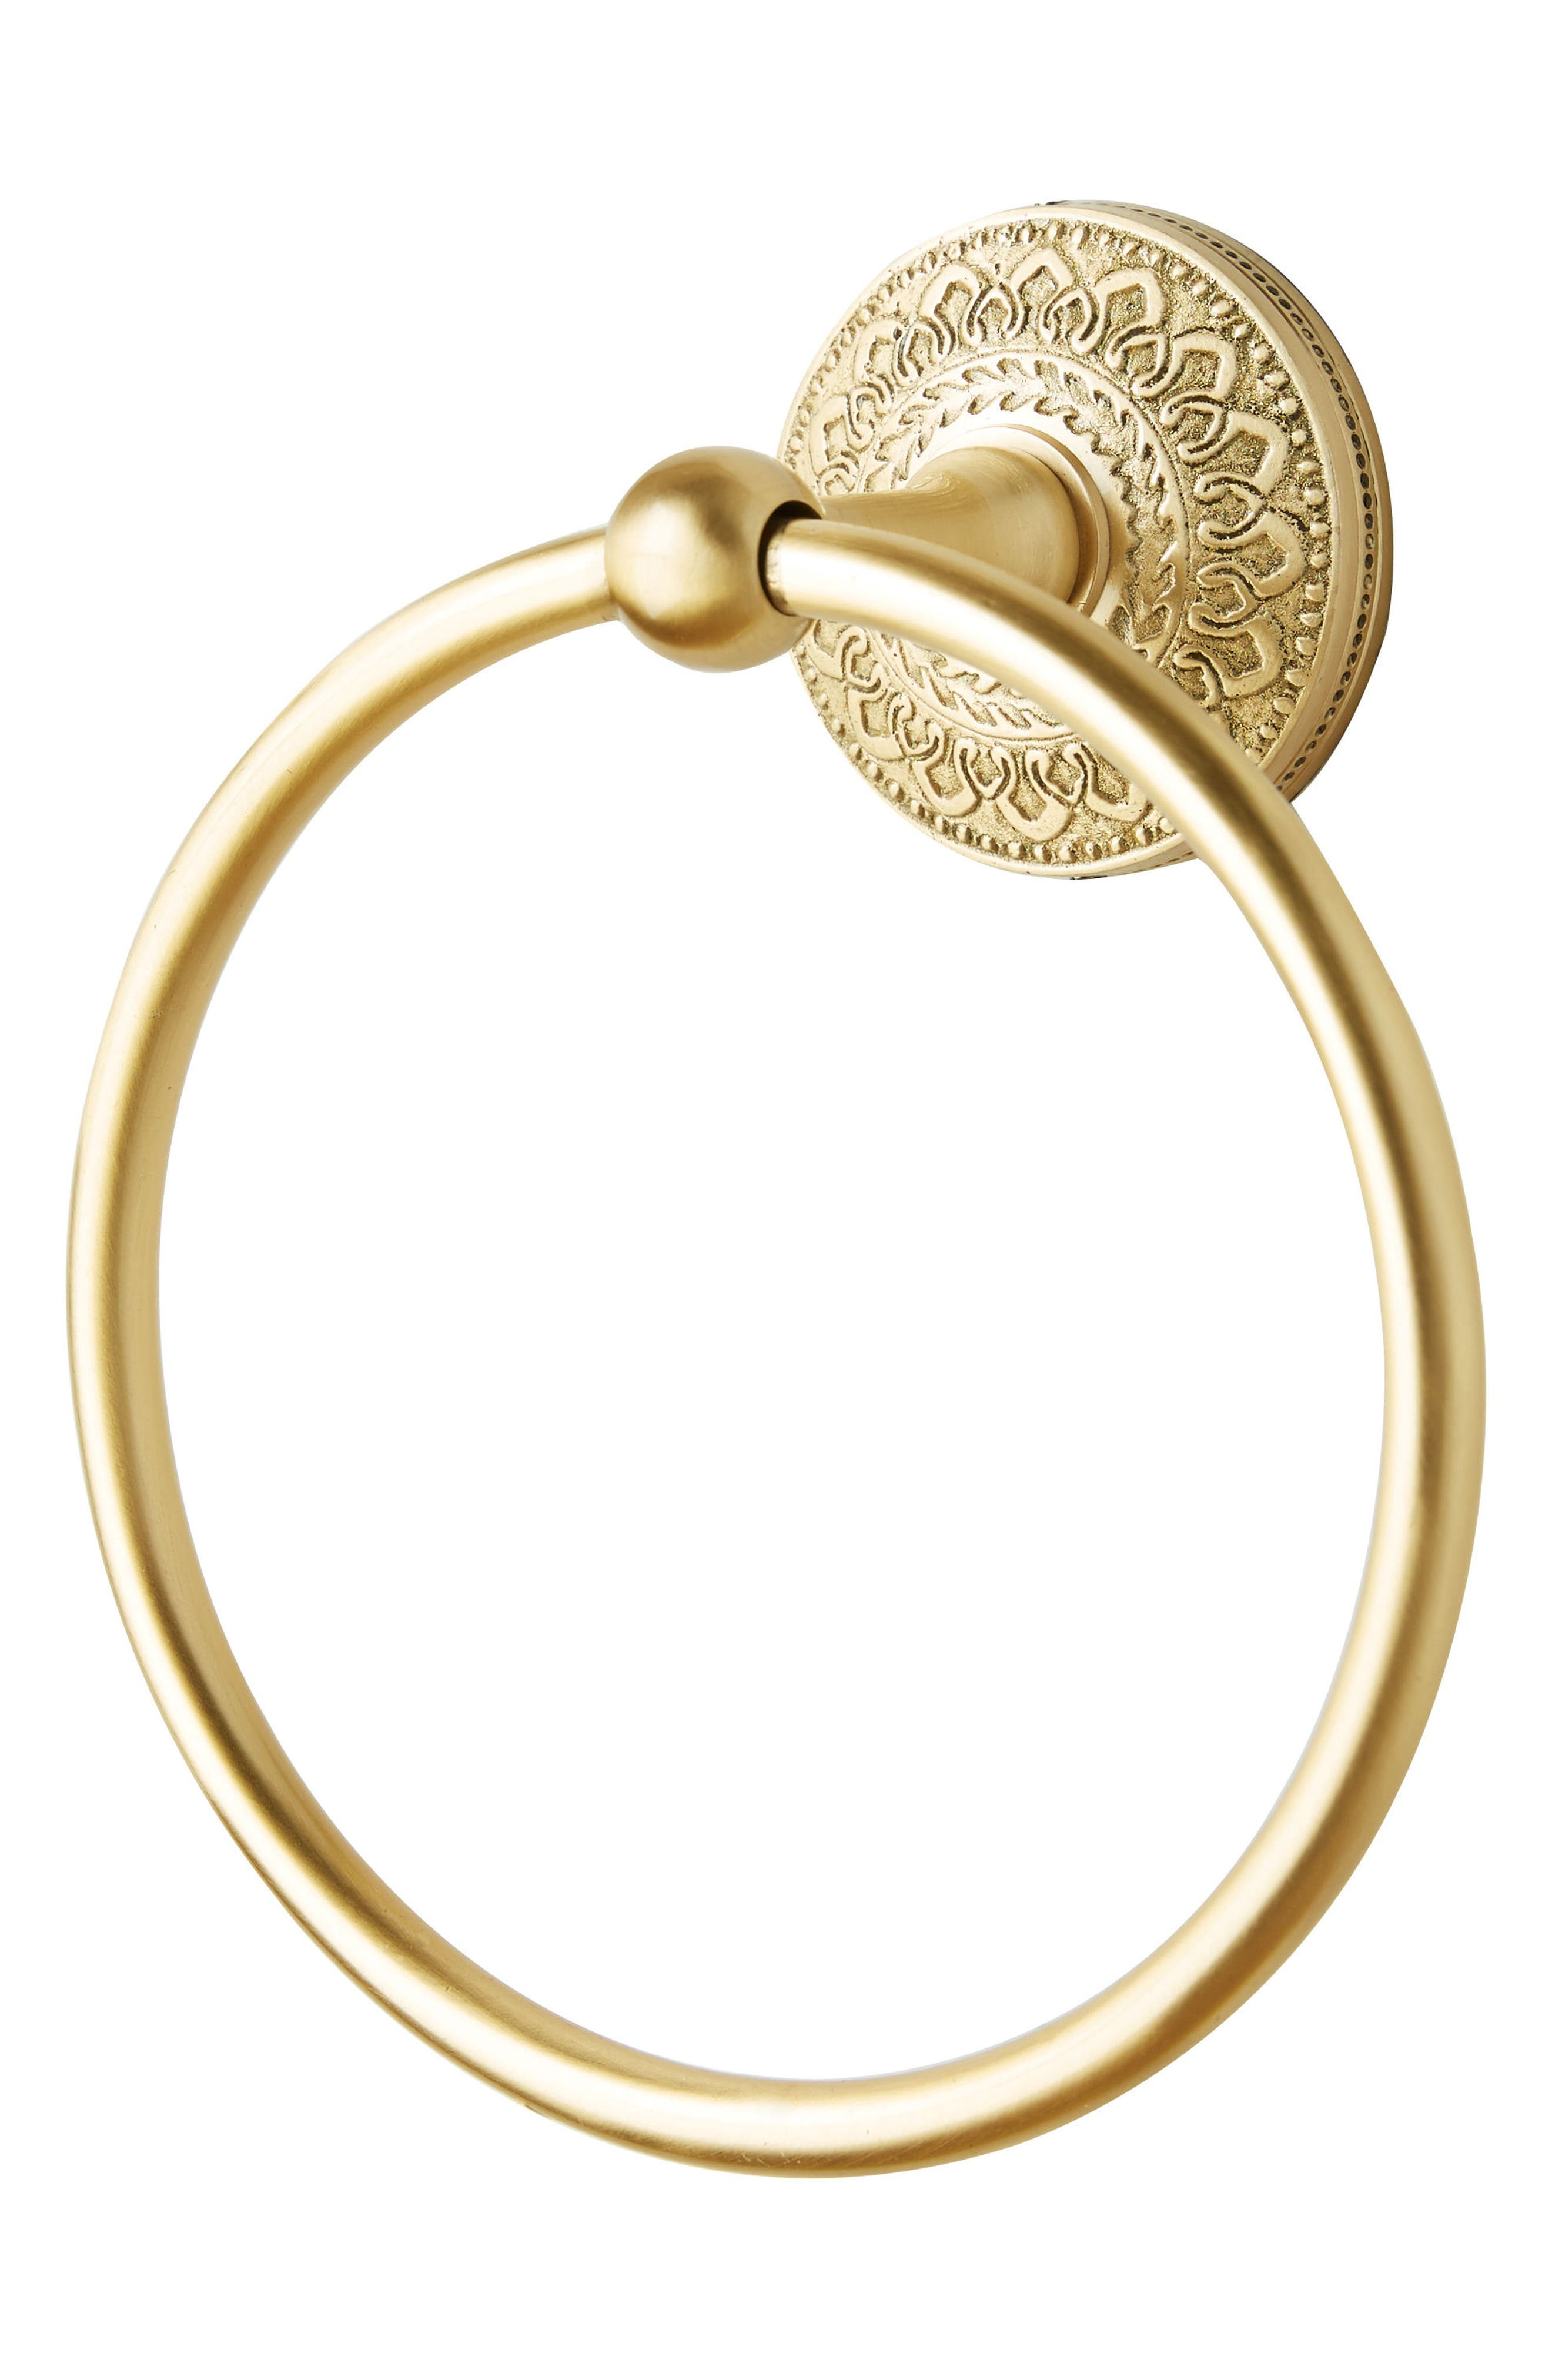 Brass Medallion Towel Ring,                             Alternate thumbnail 4, color,                             710